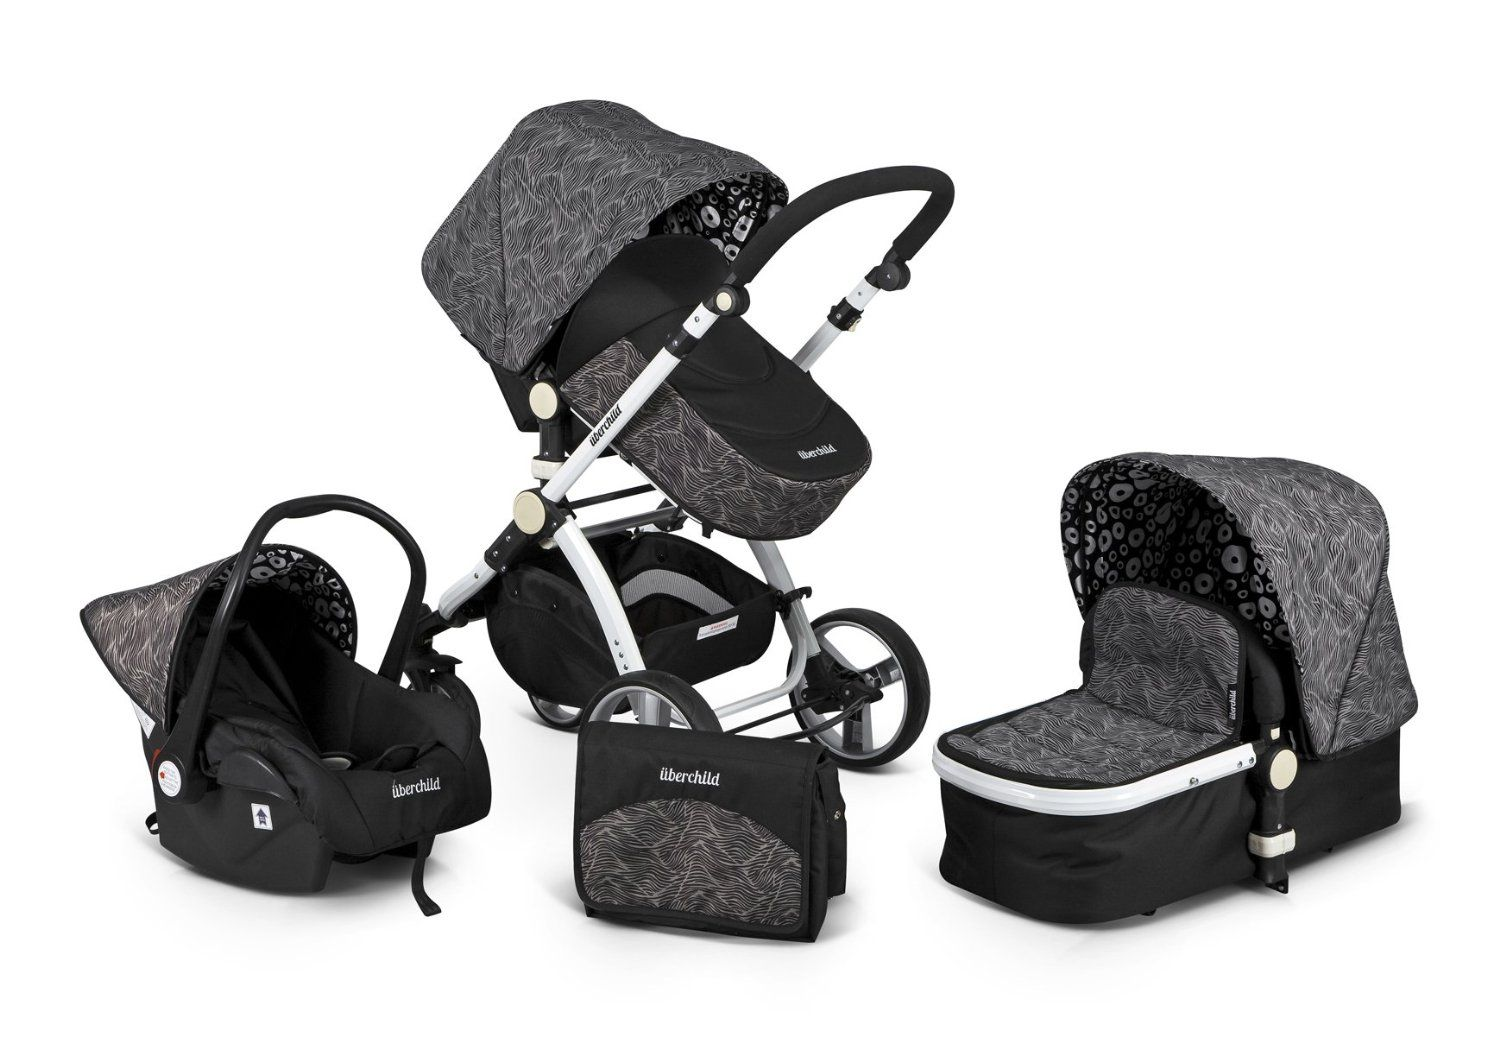 Best Travel System Strollers Uberchild Includes Stroller Carrycot Car Seat Changing Bag Rain Cover Footmuff EVO